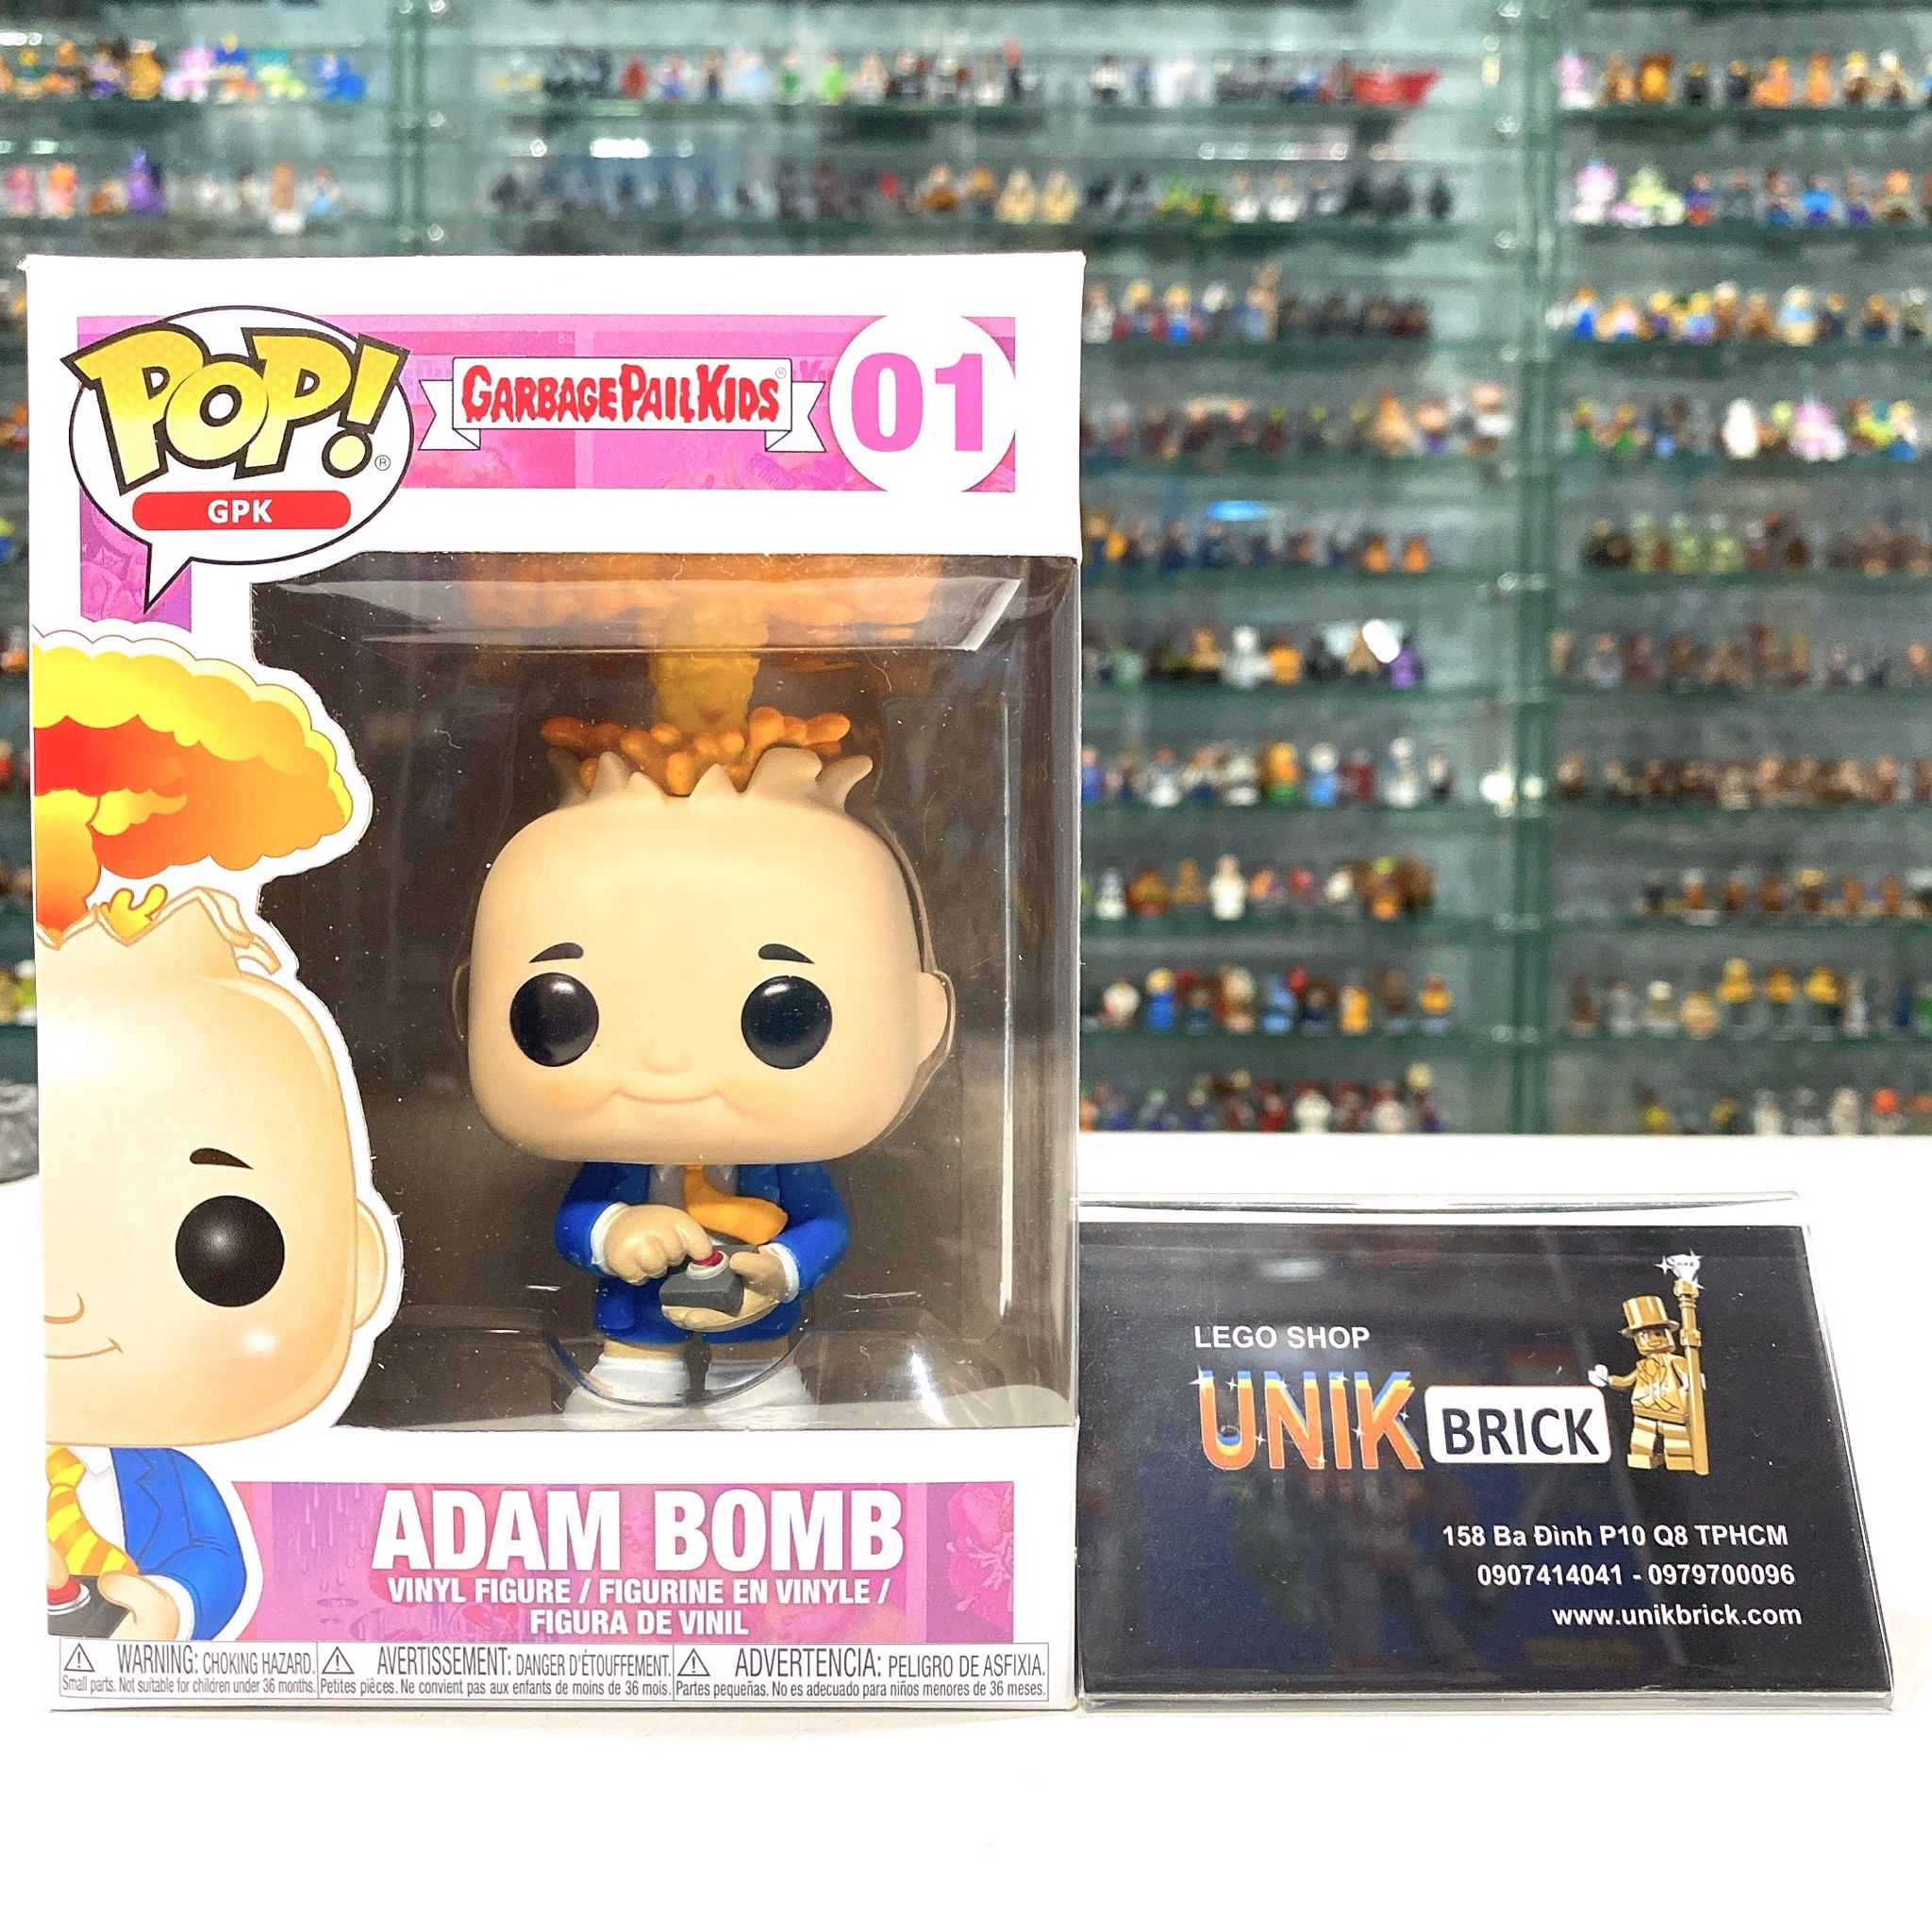 FUNKO POP Garbage Pail Kids 01 Adam Bomb